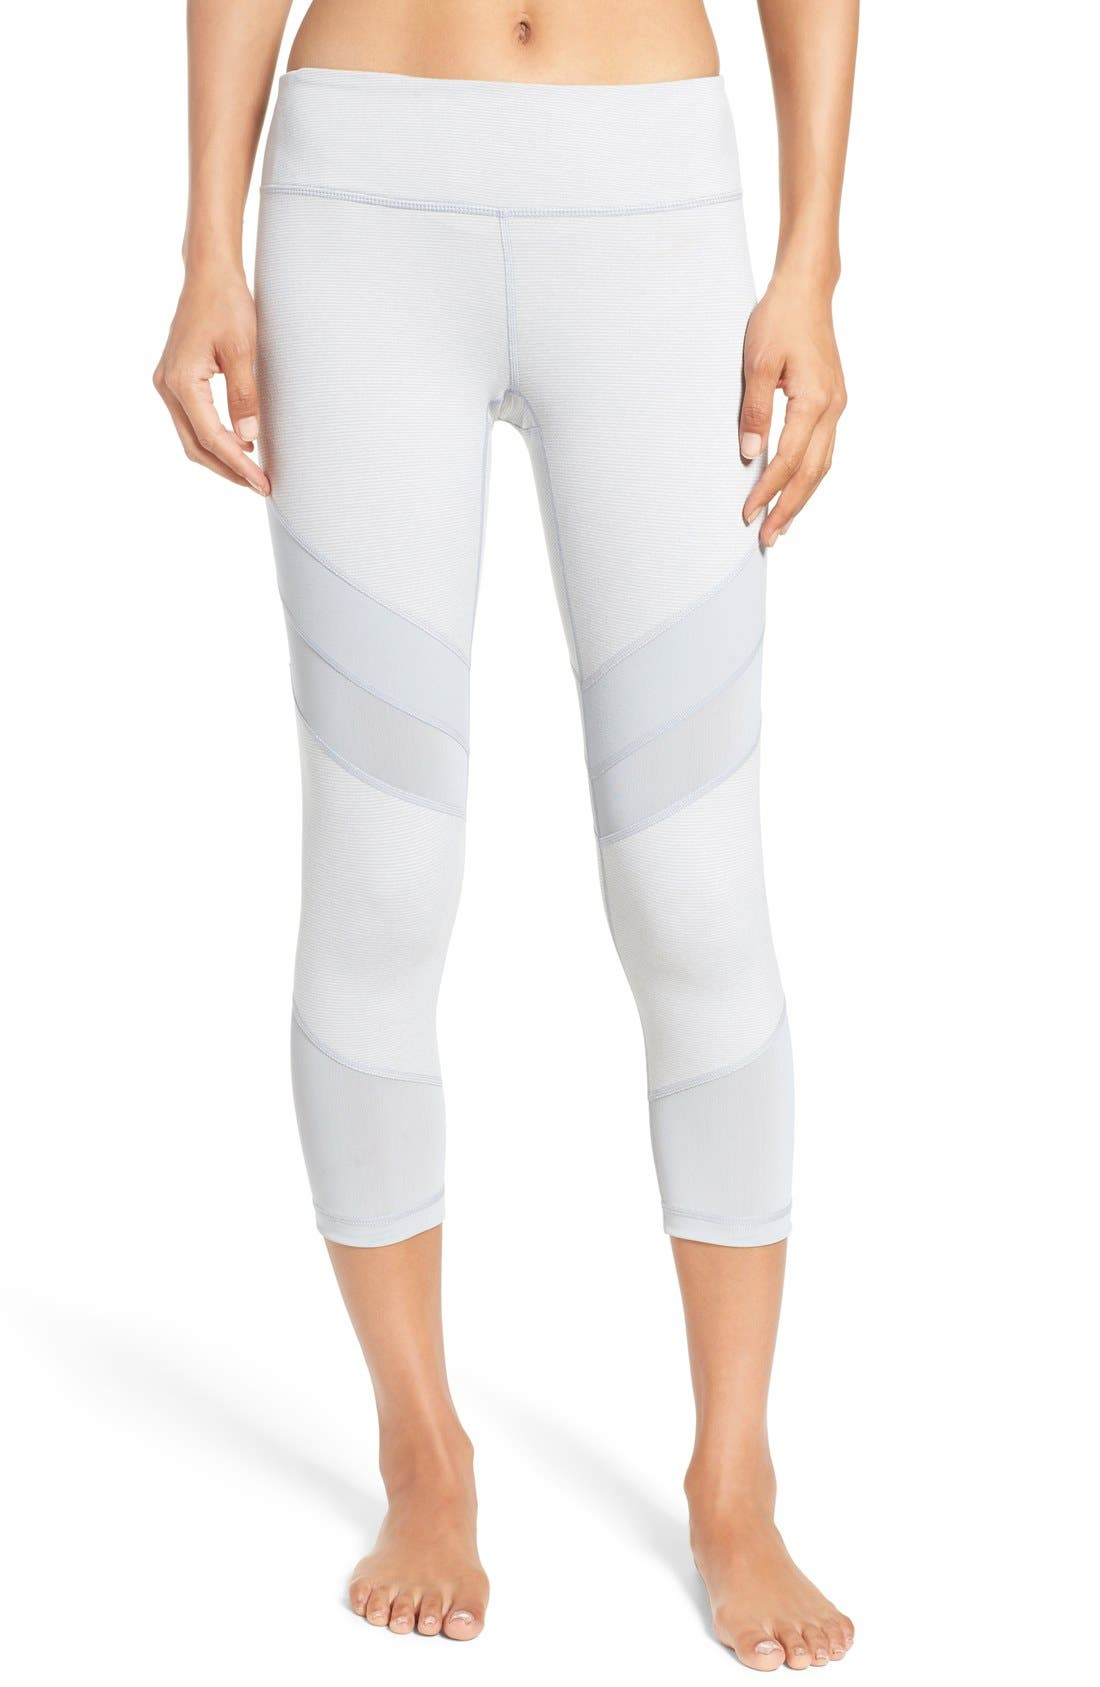 Main Image - Zella 'Live In - Electric Mix' Crop Leggings